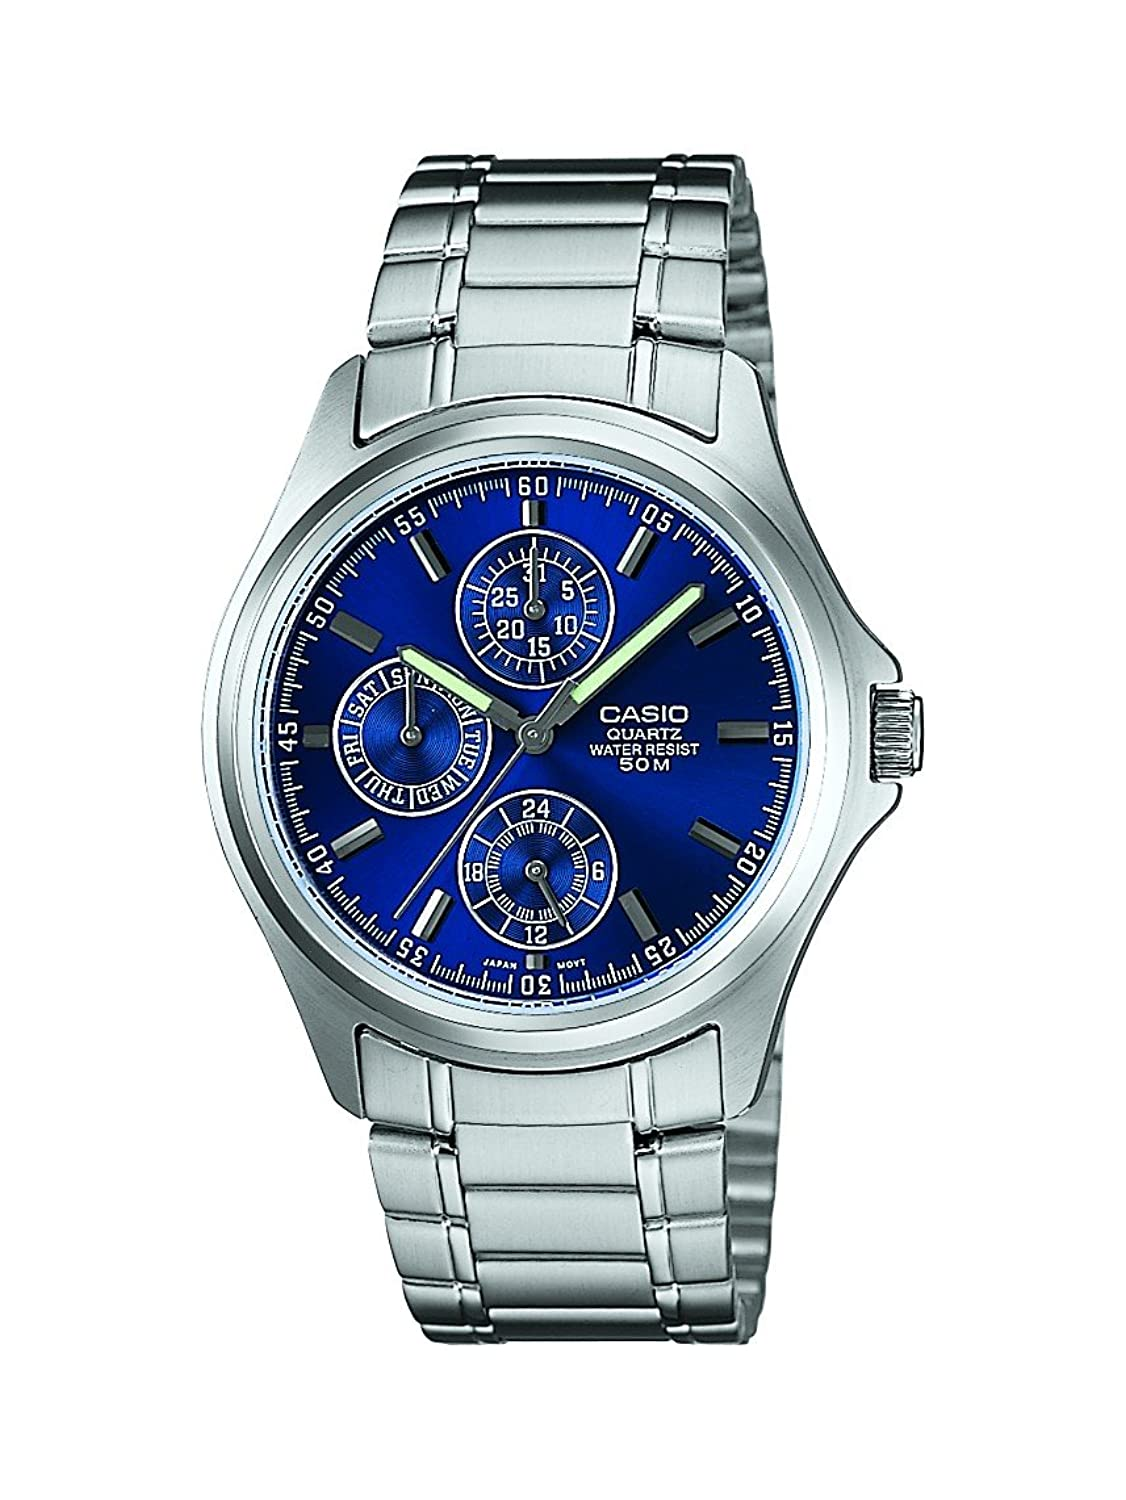 Upto 20% Off On Casio Watches By Amazon | Casio Enticer Blue Dial Men's Watch - MTP-1246D-2AVDF (A387) @ Rs.2,965